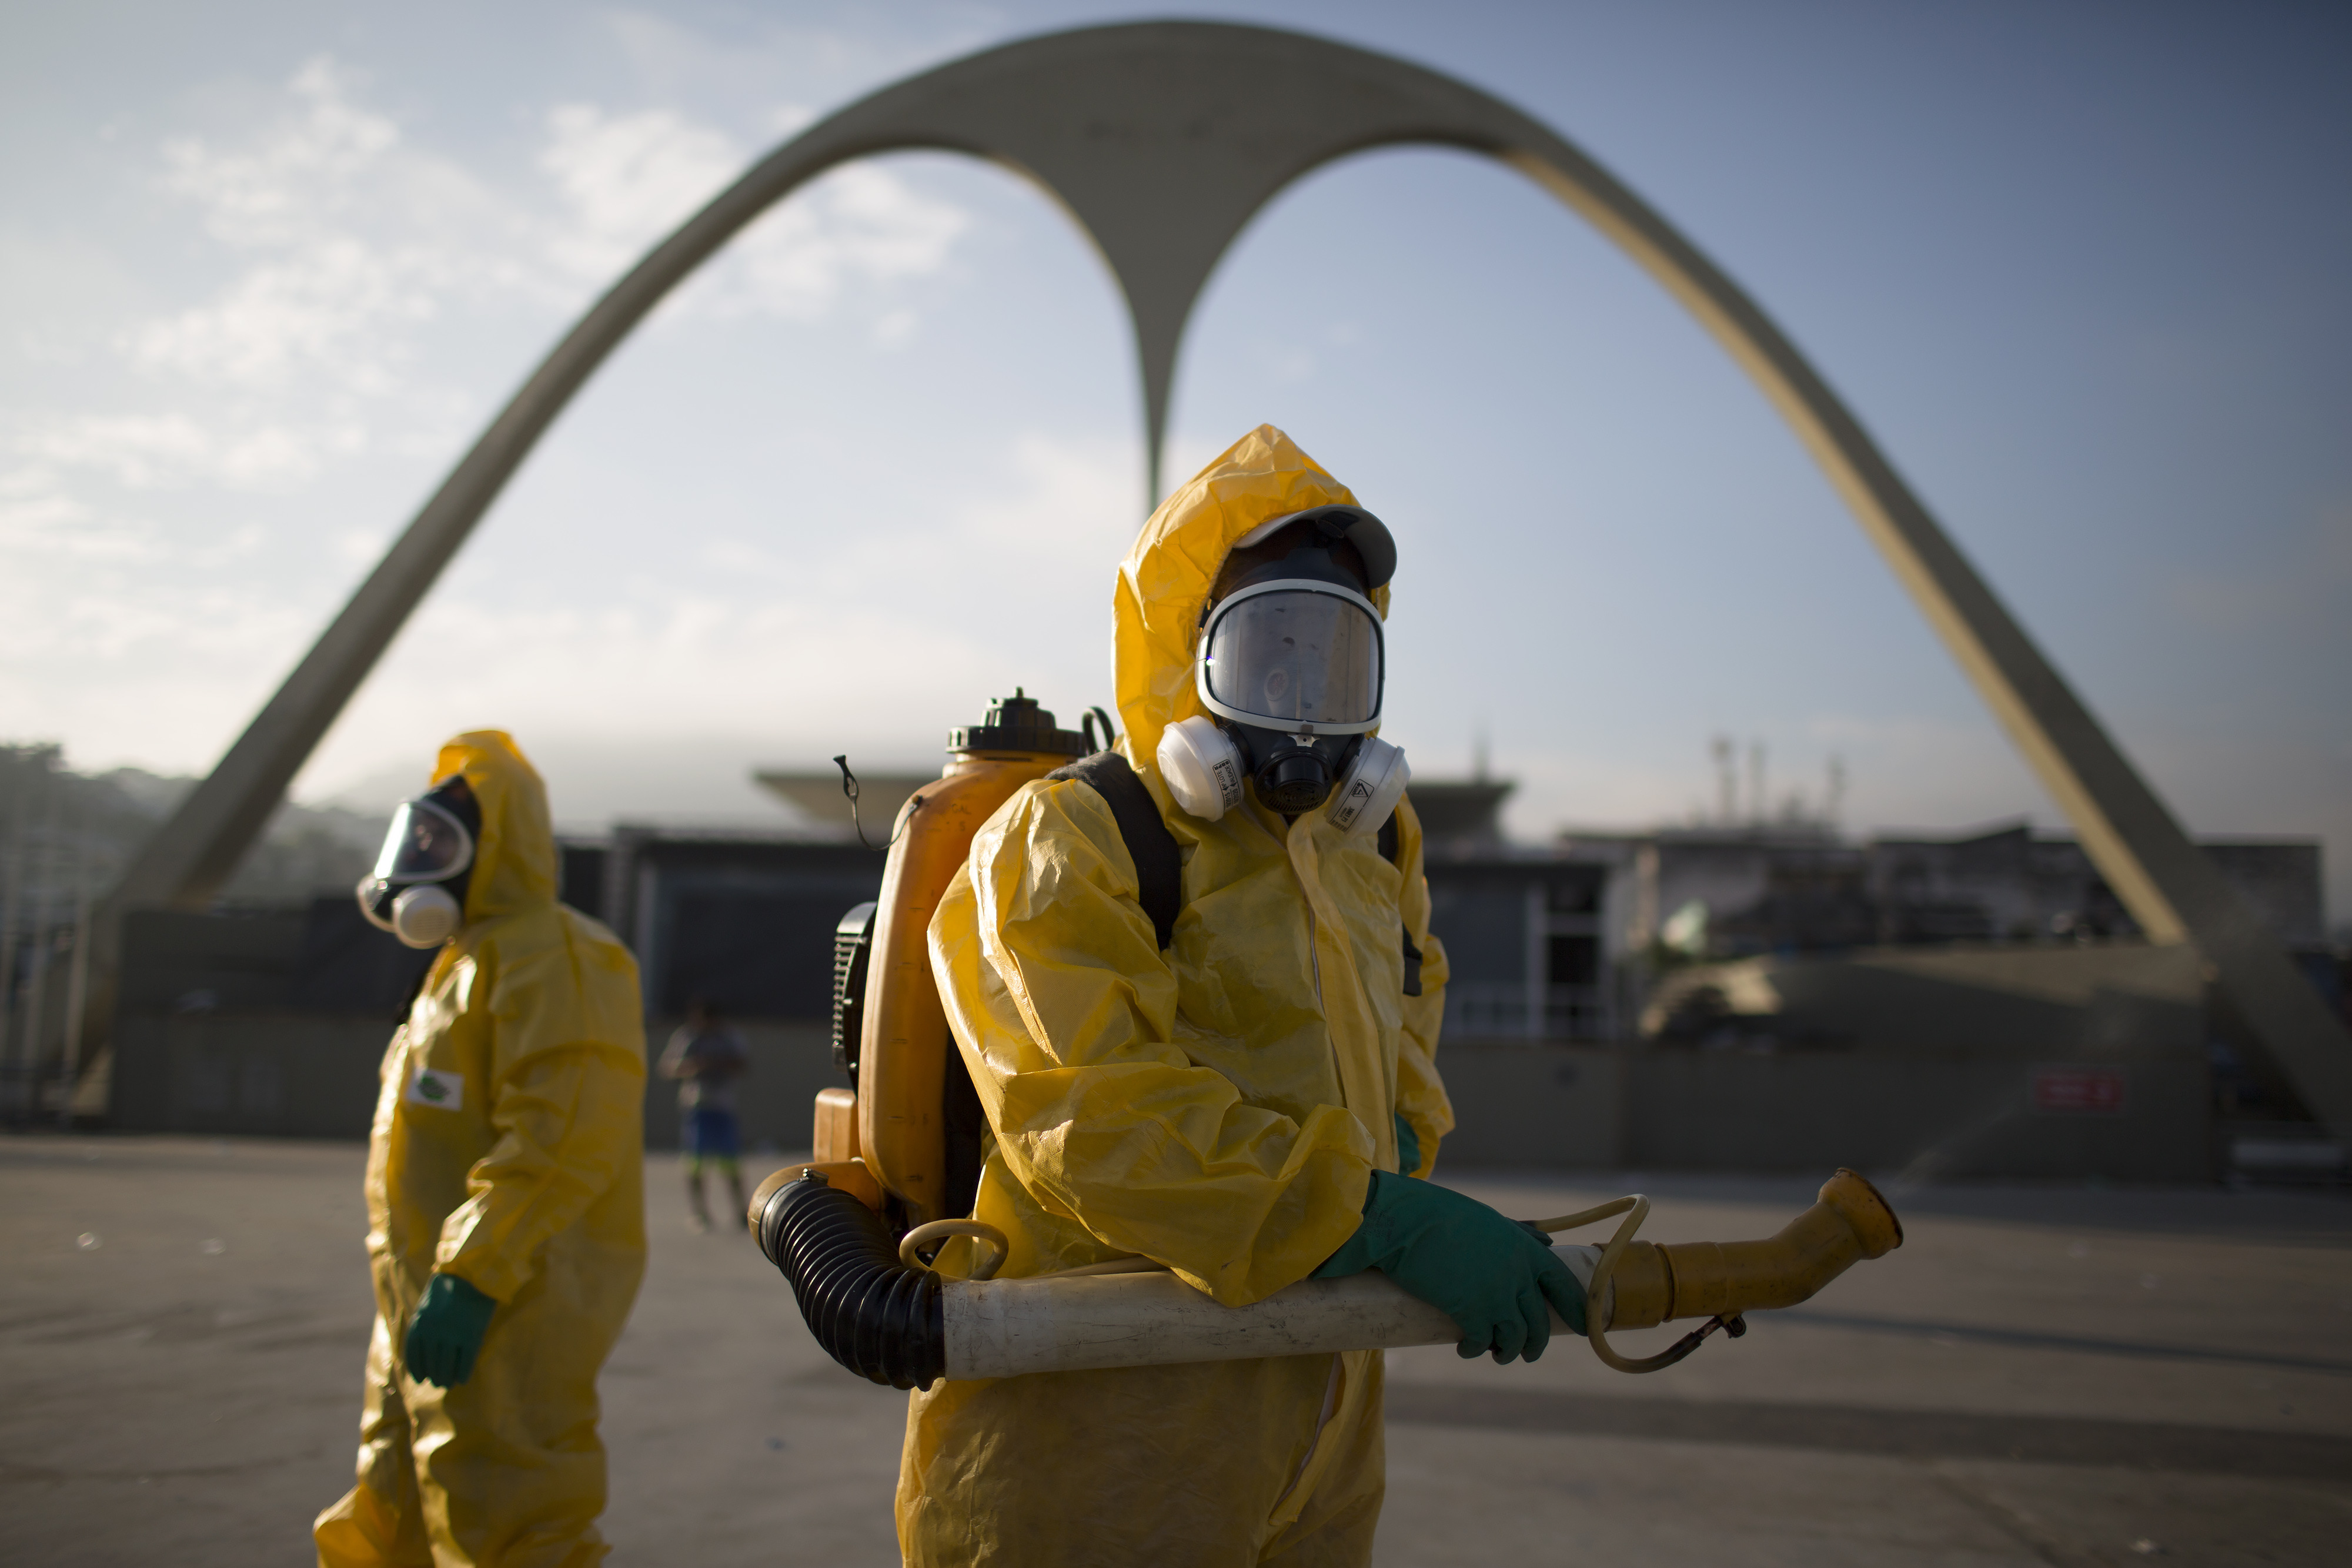 A health worker stands in the Sambadrome as he sprays insecticide to combat the Aedes aegypti mosquitoes that transmits the Zika virus in Rio de Janeiro, Brazil,, Jan. 26, 2016.